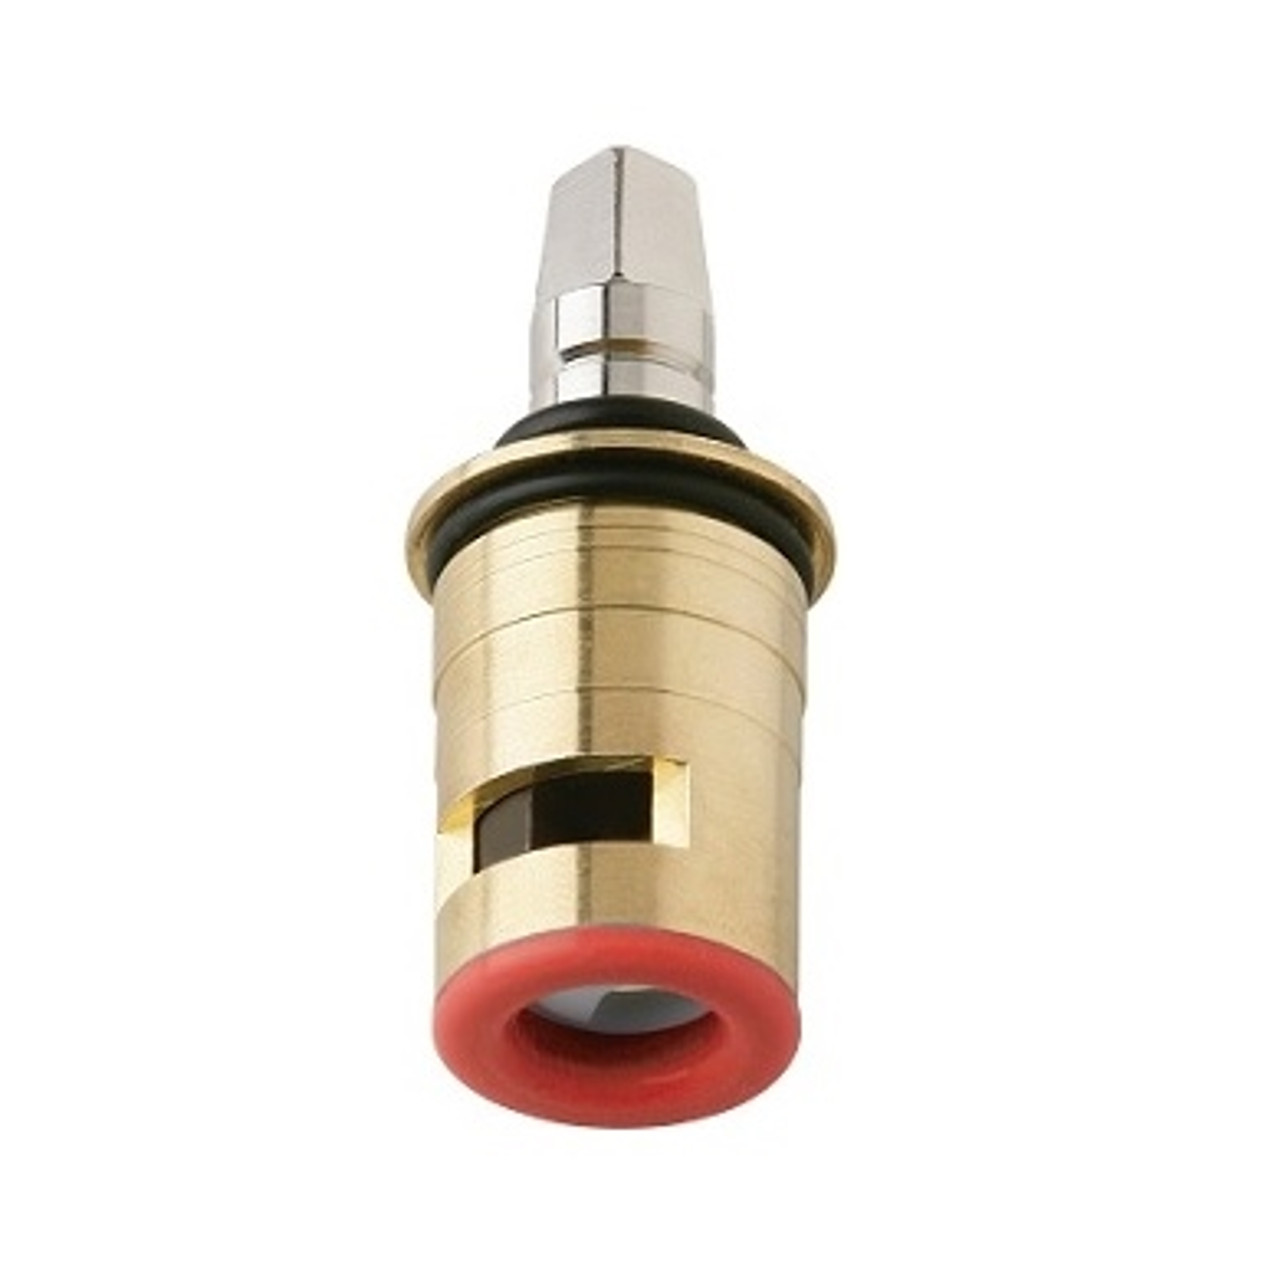 Chicago Faucets 1 100xkbl12jkabnf Chicago Faucets Part Left Hand Ceramic 1 4 Turn Operating Cartridge Short Stem For Exposed Caps Qty Pack Only